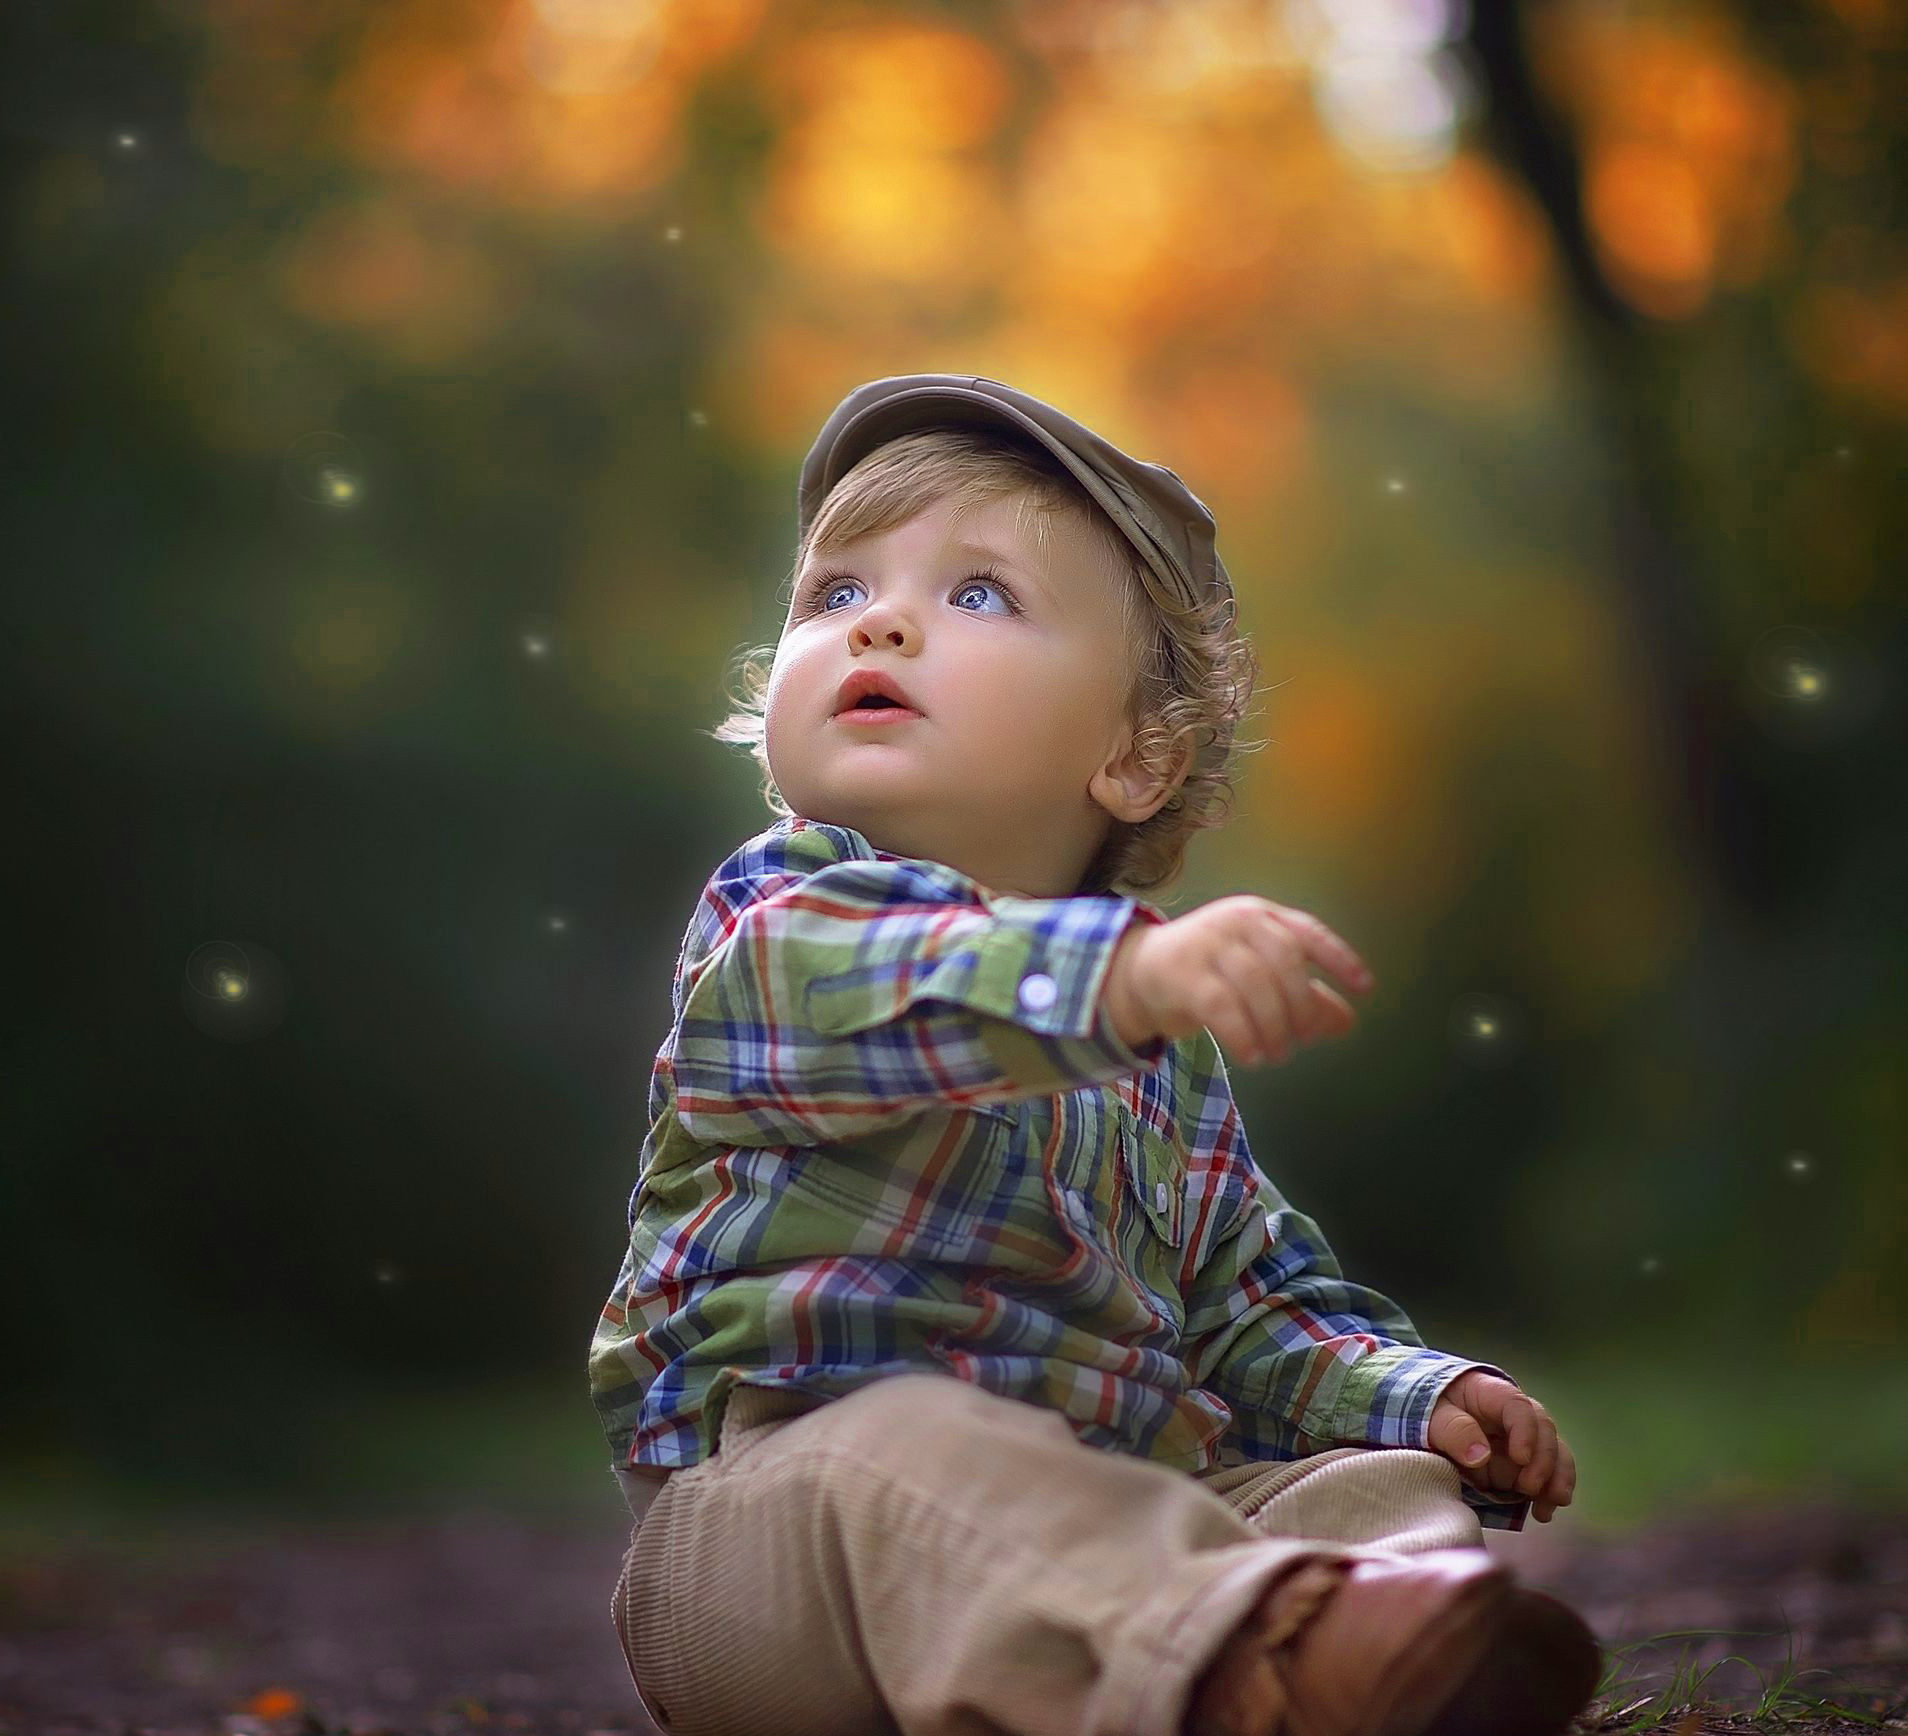 Cute Baby Boy Images  Photo Wallpaper Pictures Pics HD For Whatsapp